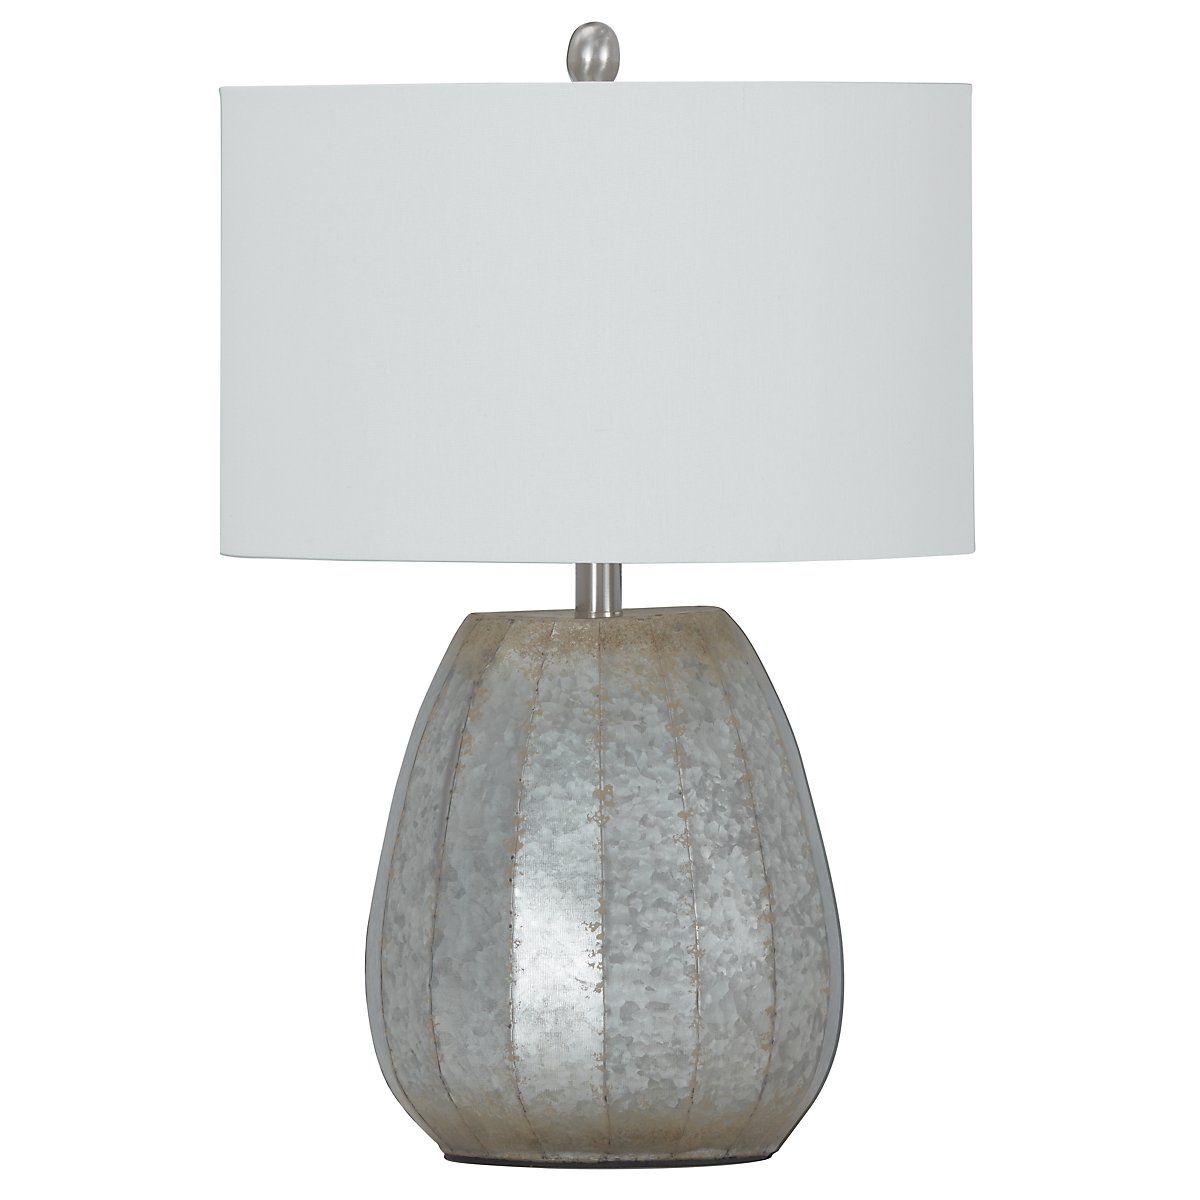 City furniture rhett silver table lamp rhett silver table lamp geotapseo Image collections